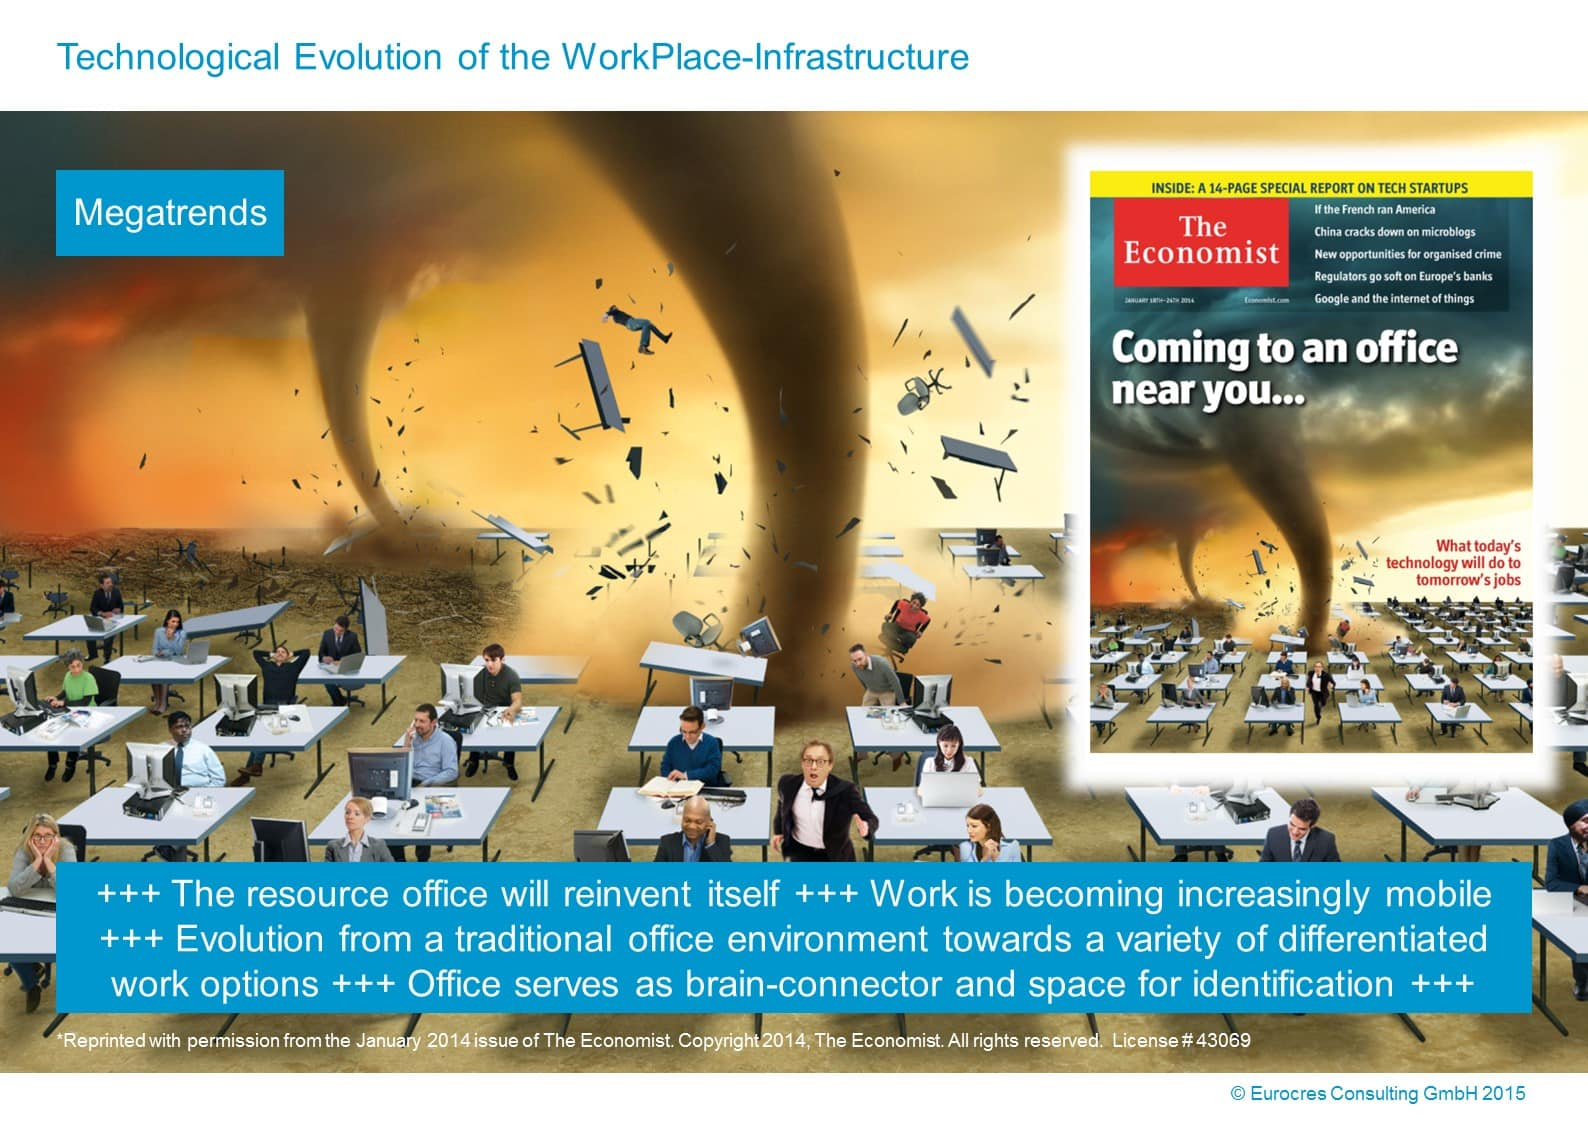 WorkPlace Flash: Technological evolution of the WorkPlace infrastructure